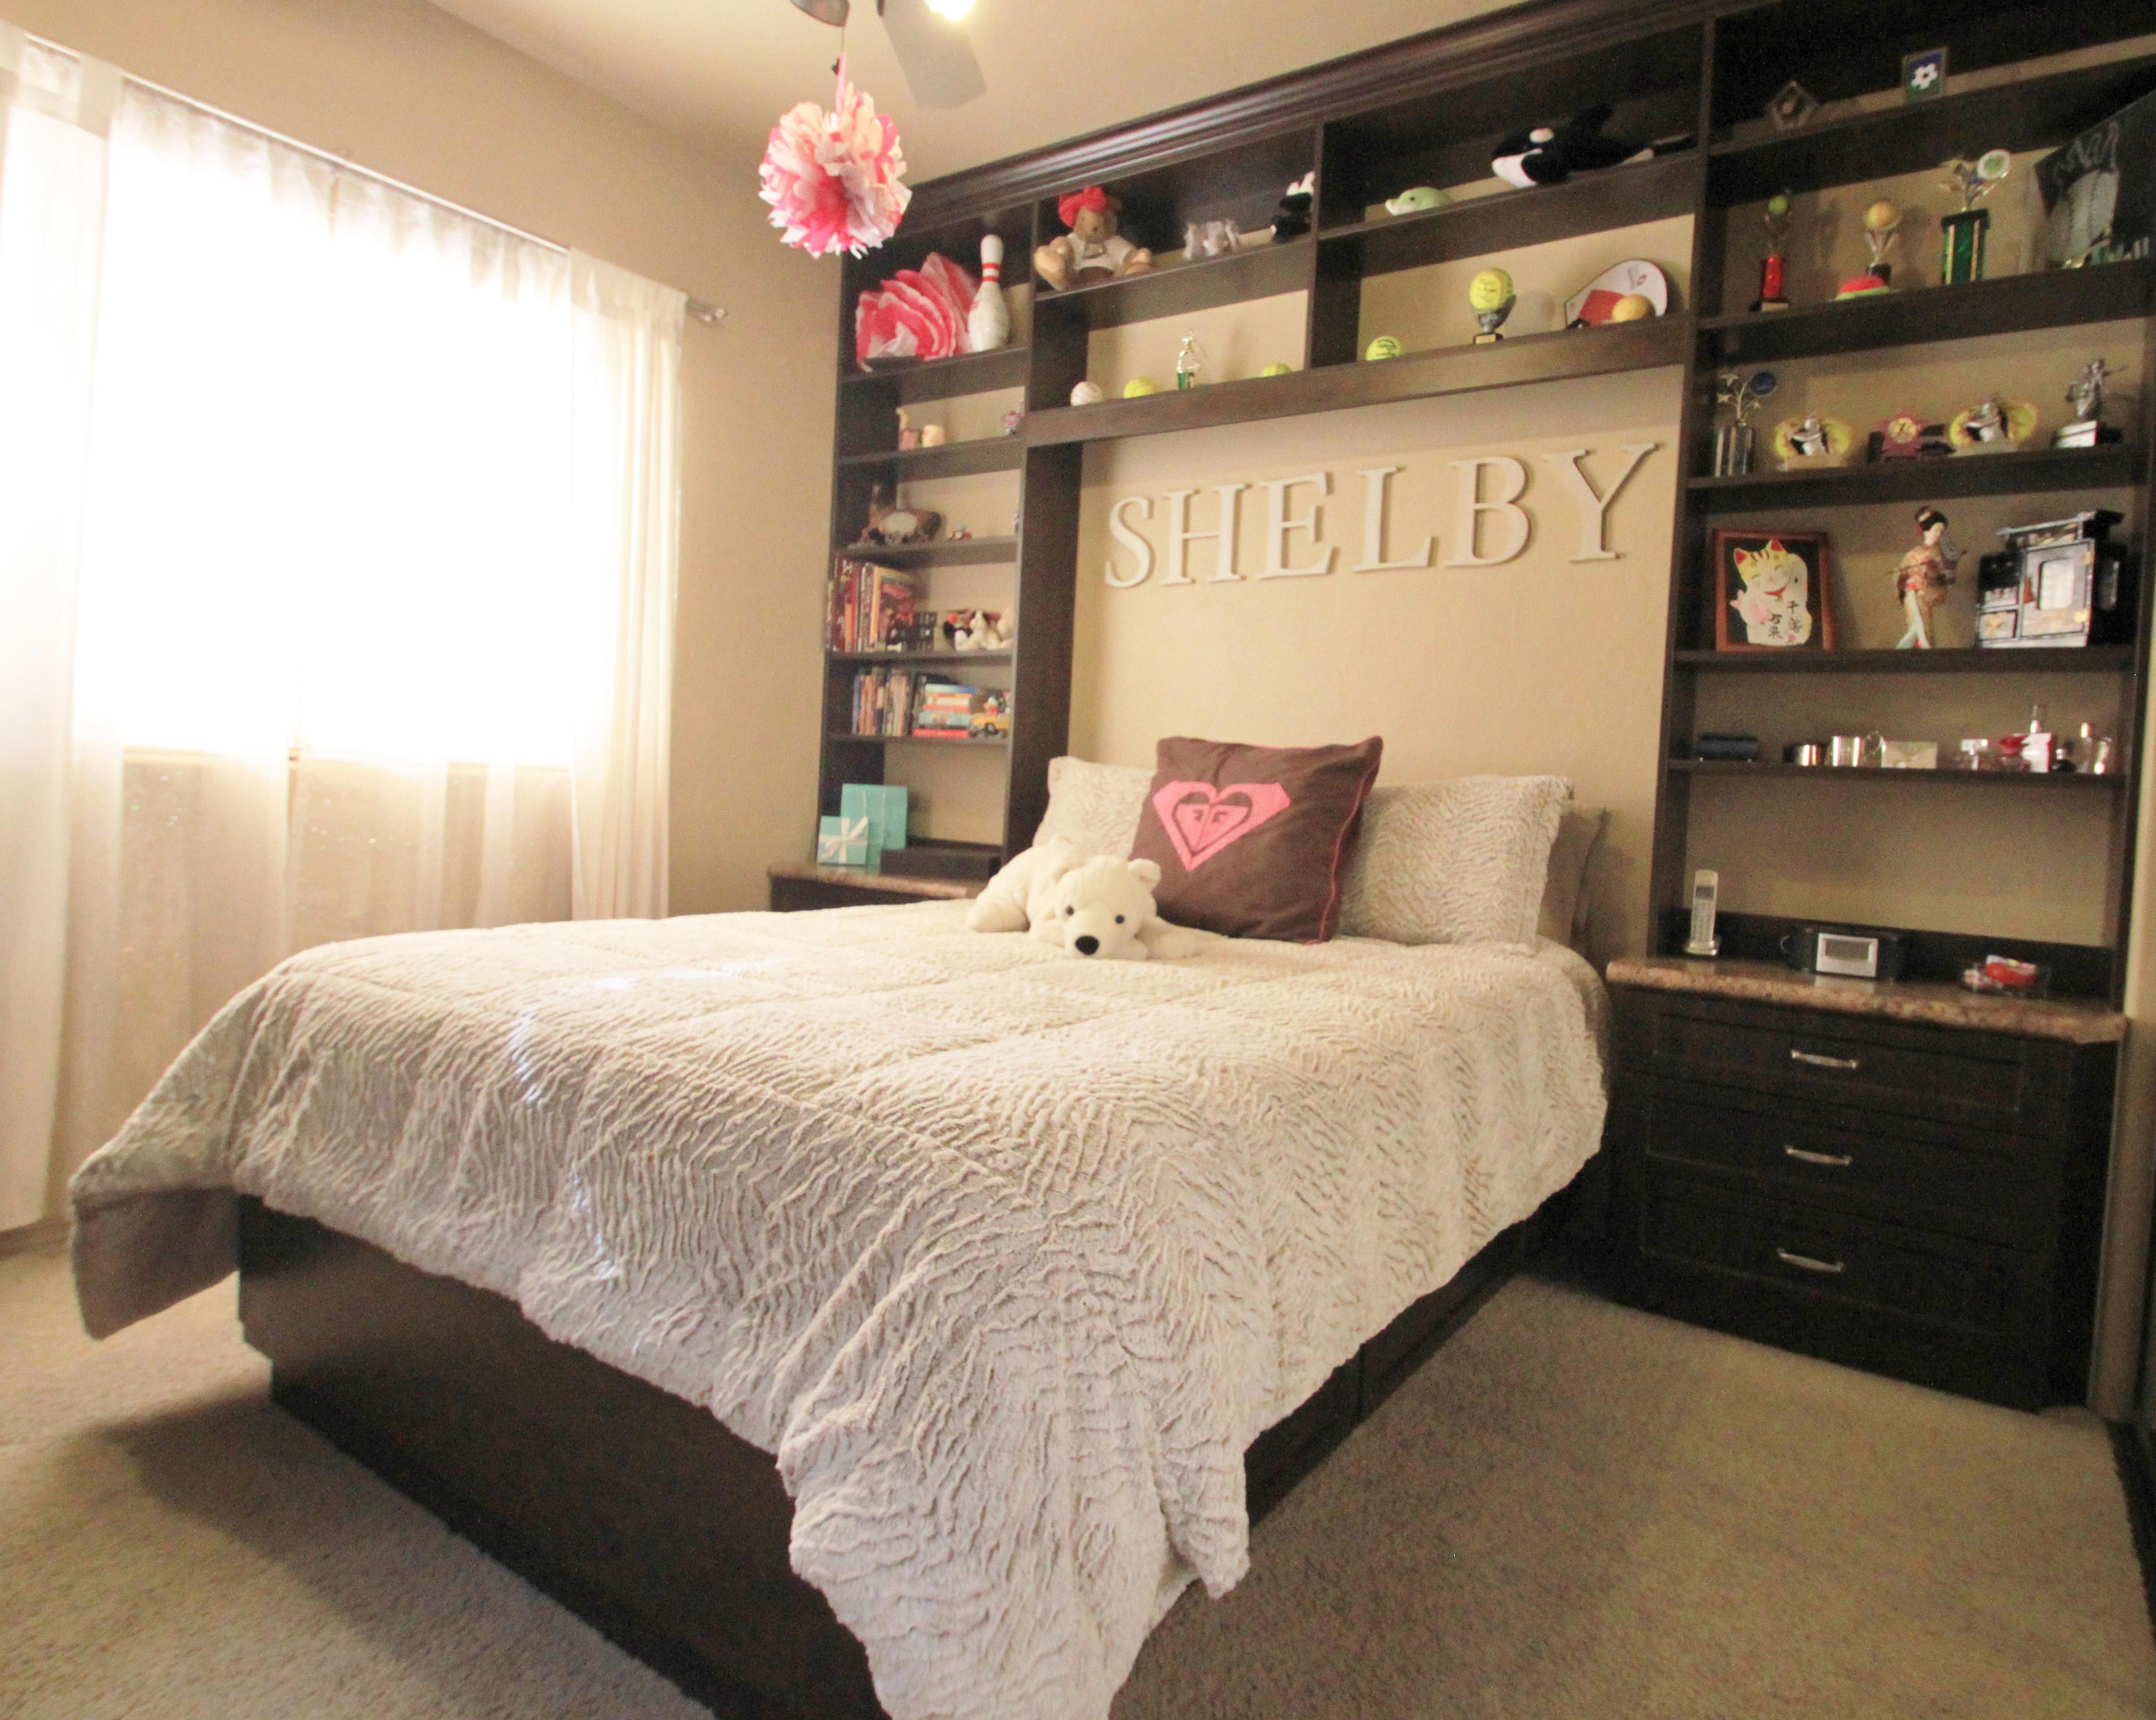 Wall bed solutions for closet trends custom closets cabinetry imagine transforming one room into two with that bed out of the way will it become an office a sewing room a yoga studio what do you have in mind amipublicfo Images